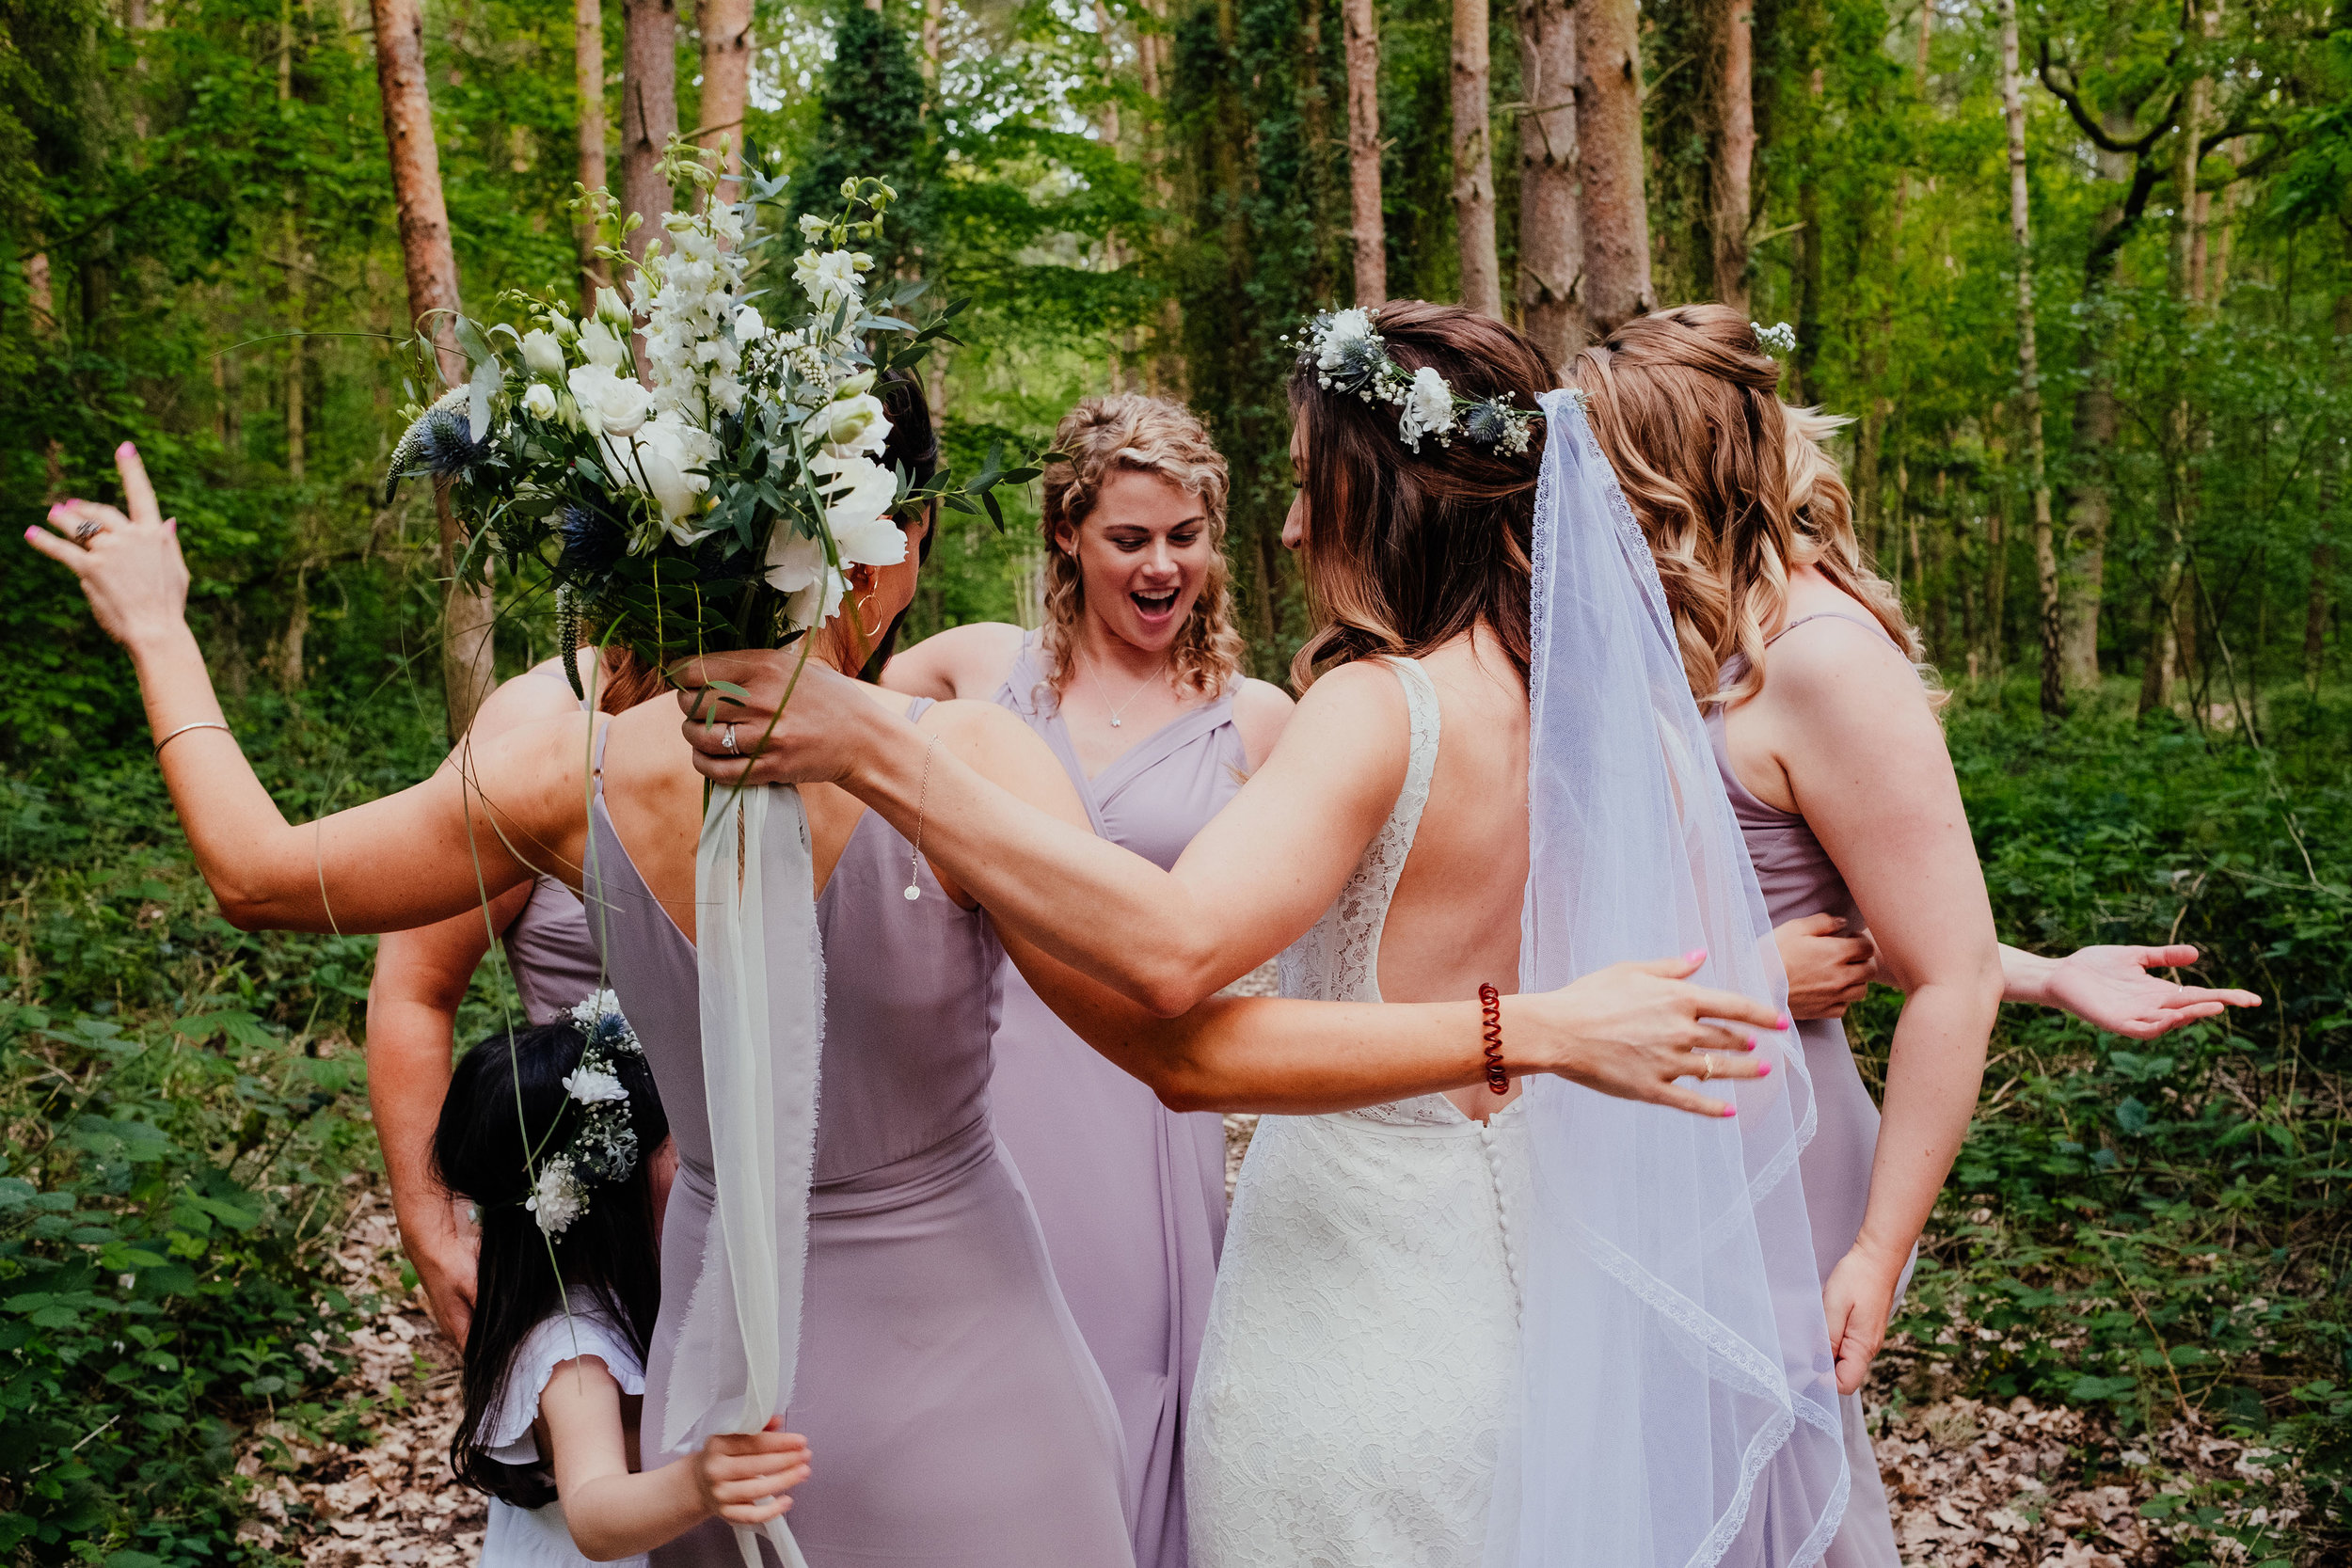 Bride dancing with bridesmaids in the woods at Captains Wood Barn wedding